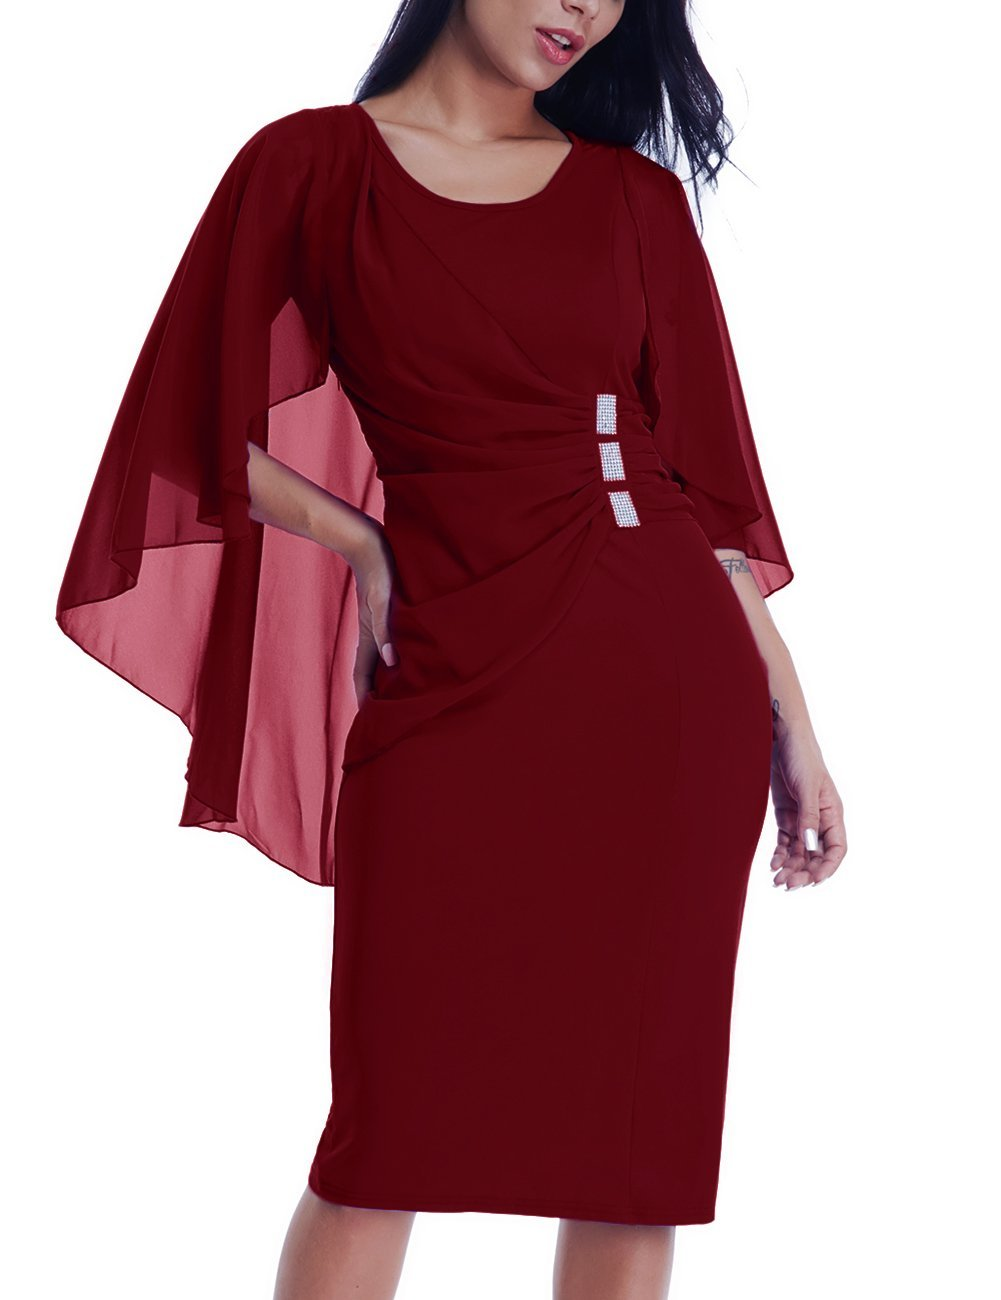 Lalagen Womens Chiffon Plus Size Ruffle Flattering Cape Sleeve Bodycon Party Pencil Dress Red XL